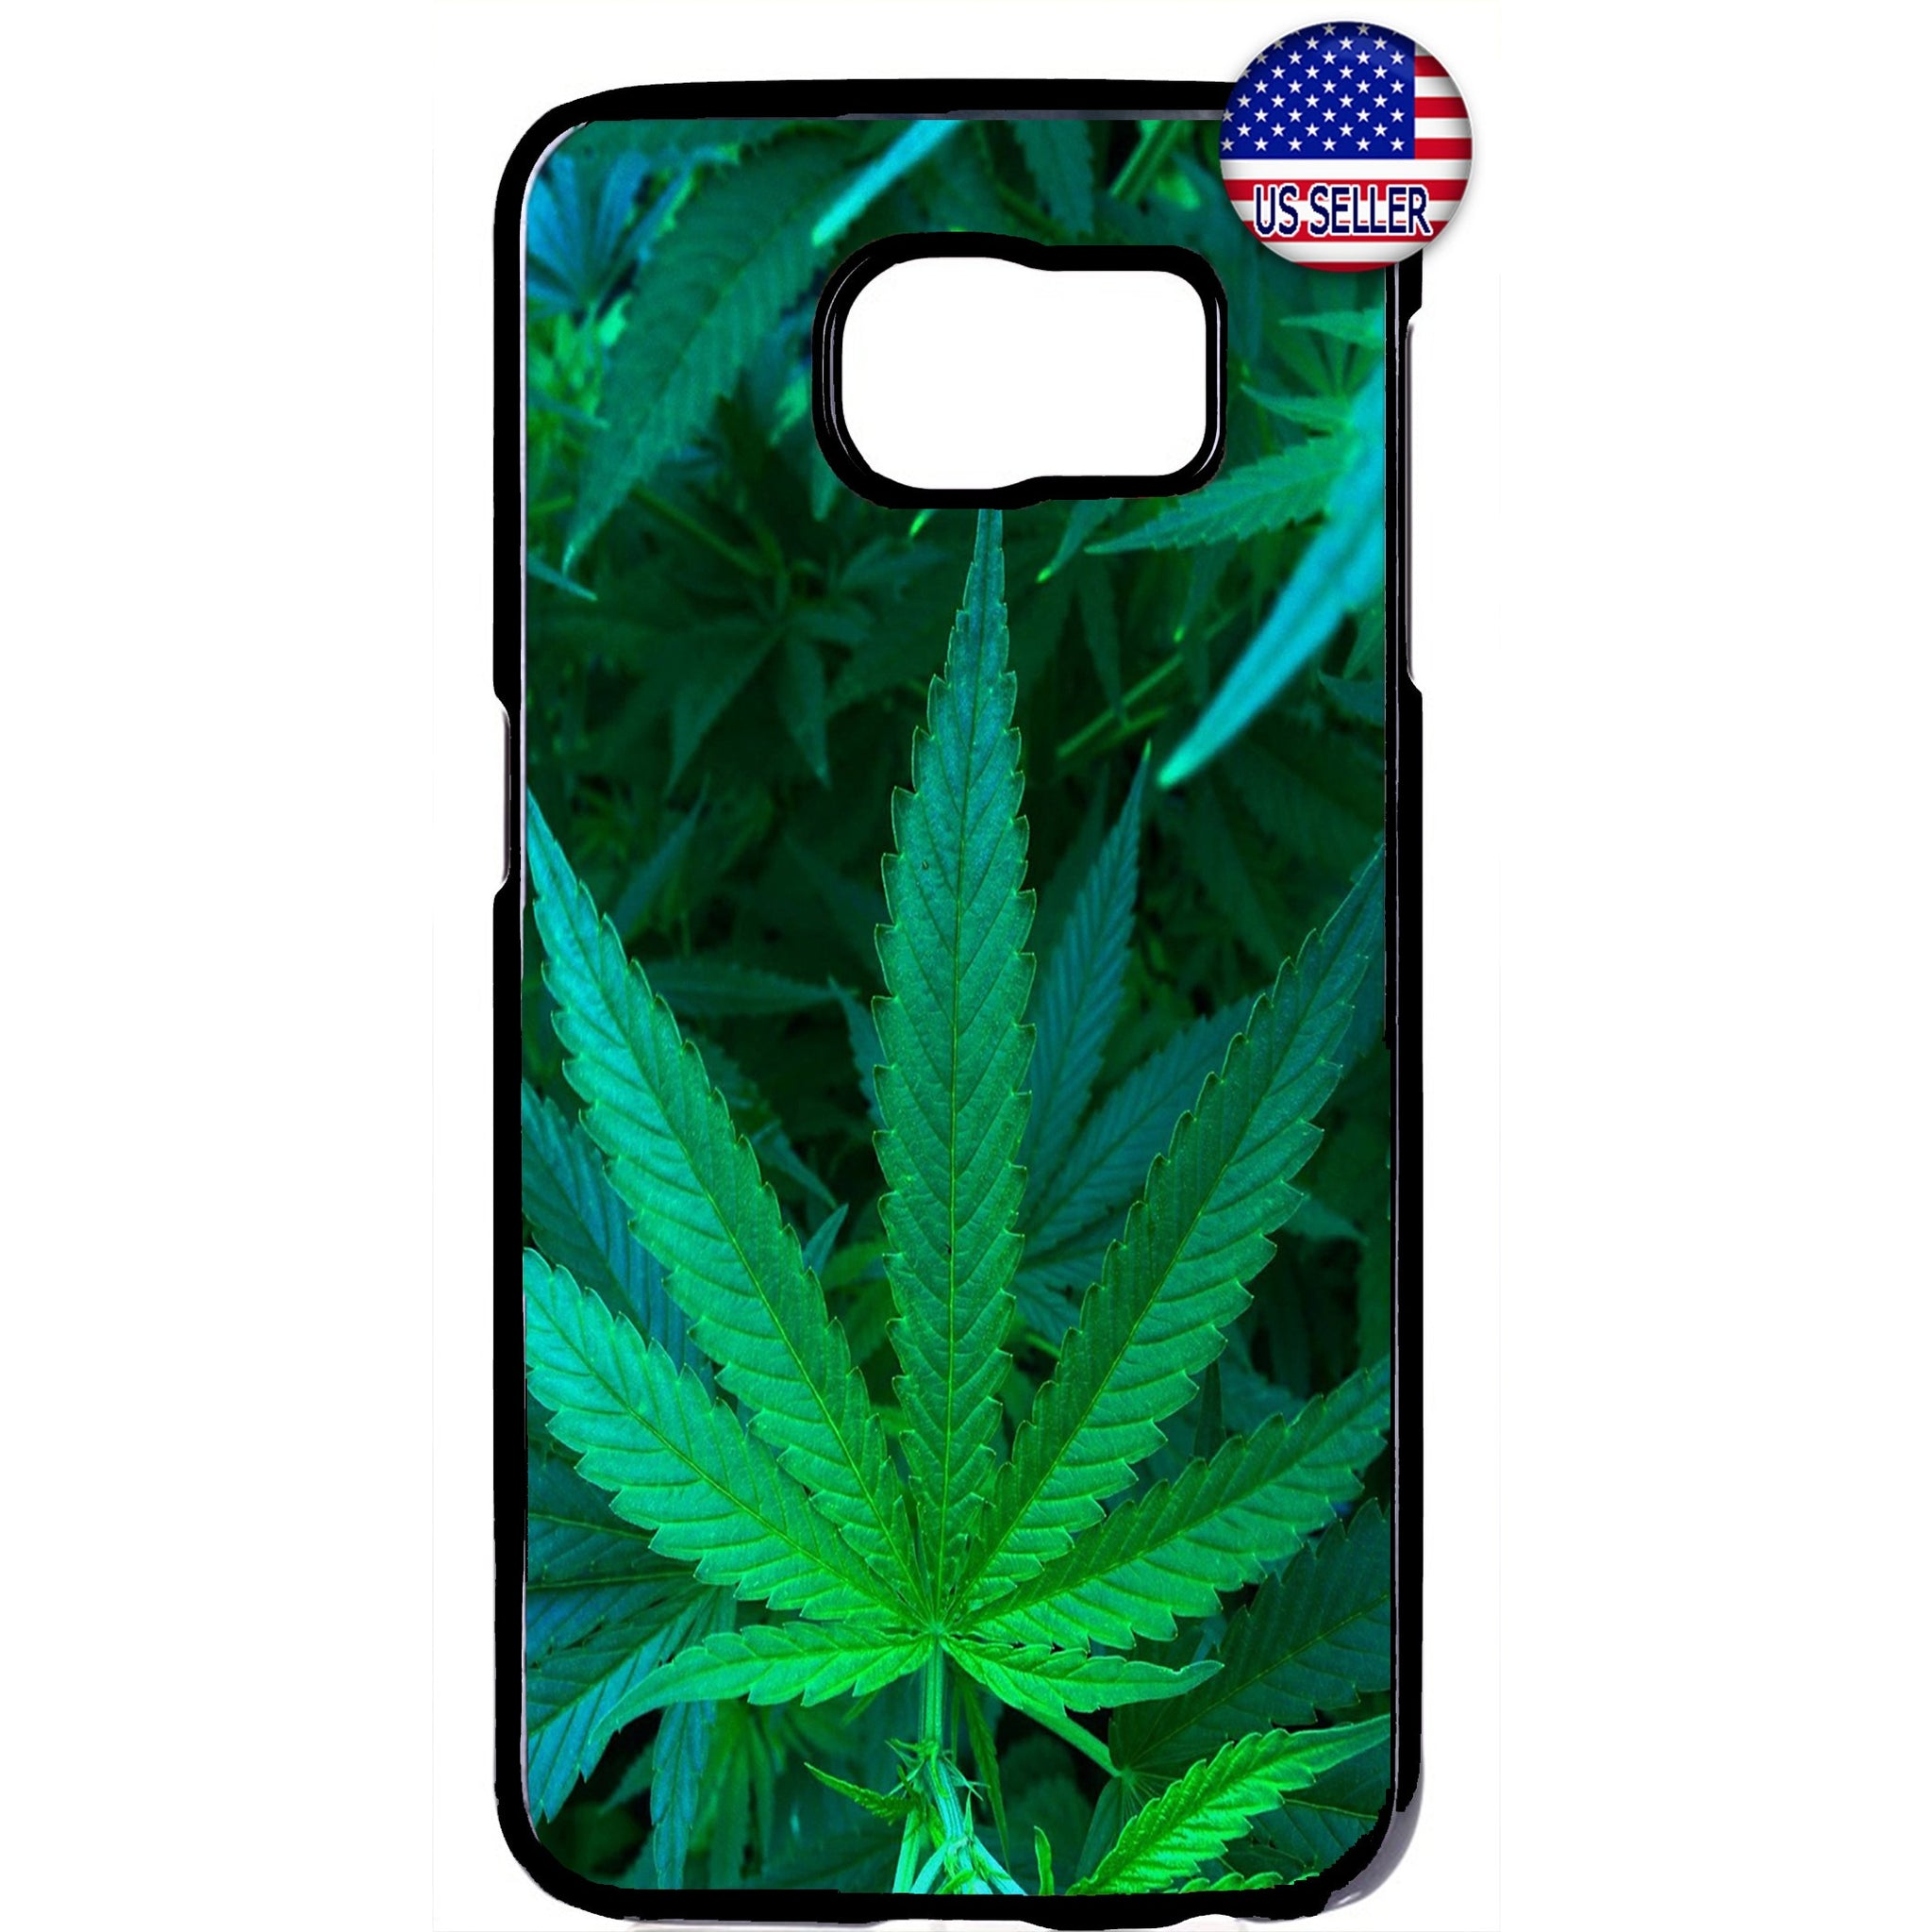 Marijuana Weed Plant Pot Smoking Rubber Case Cover For Samsung Galaxy Note